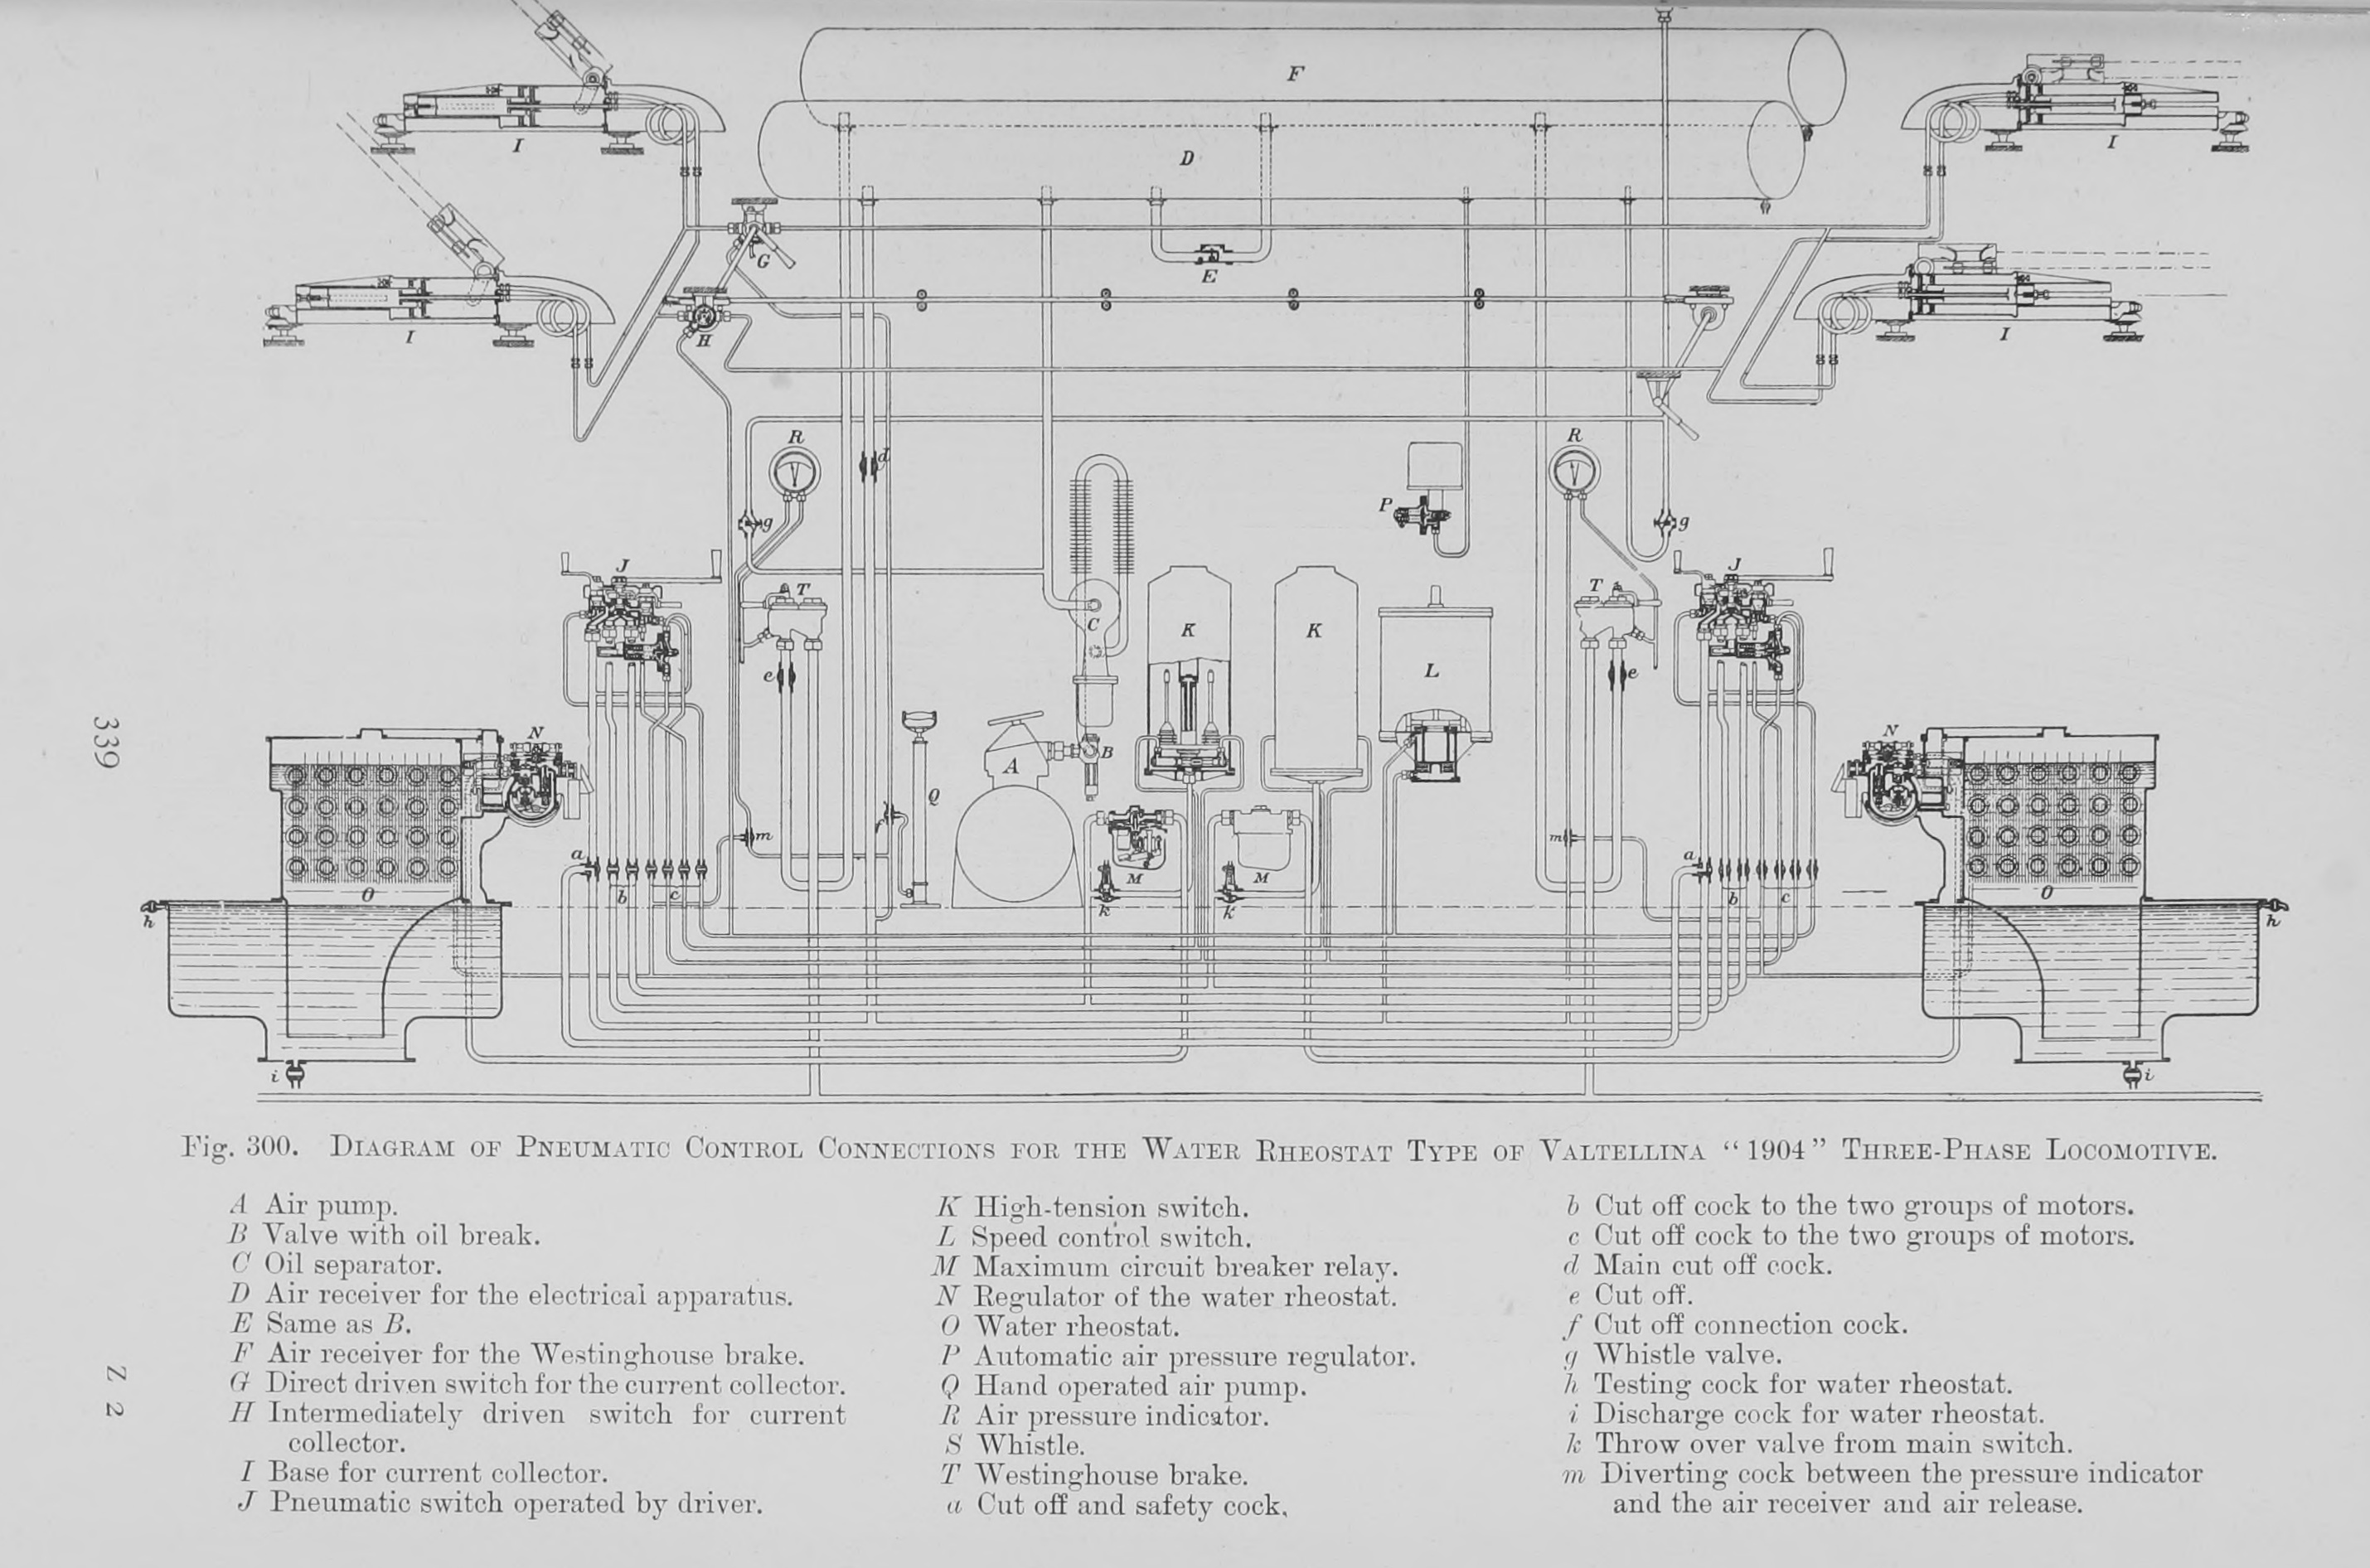 Indian Electric Train Engine Diagram Save Our Oceans. Indian Electric Train Engine Diagram. Wiring. Electric Train Engine Diagram At Scoala.co